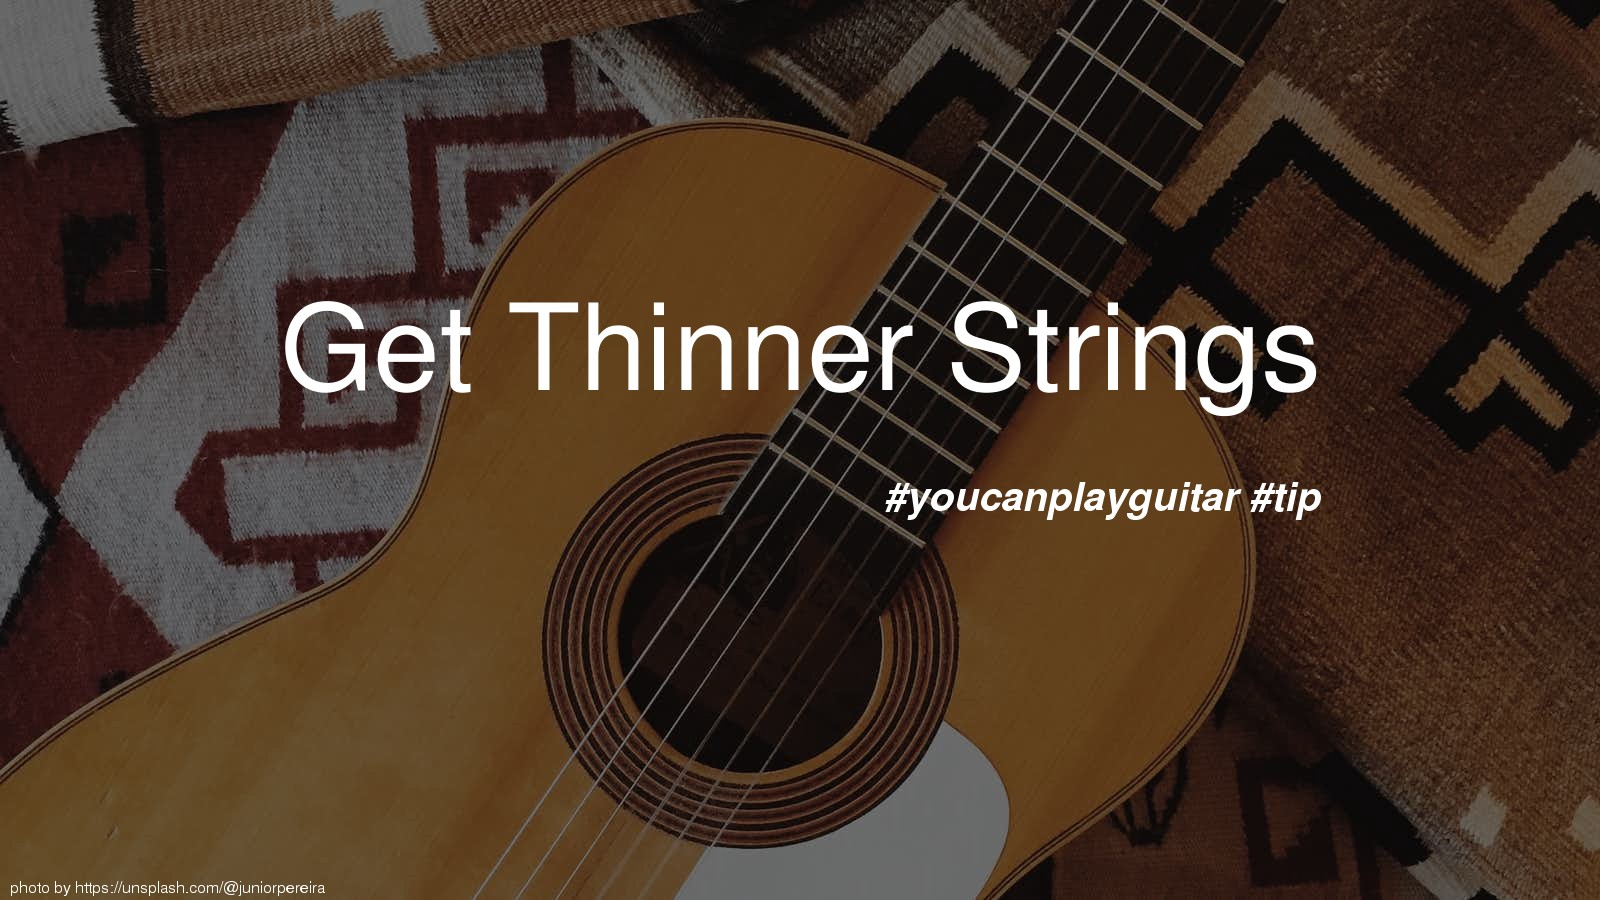 Get Thinner Strings